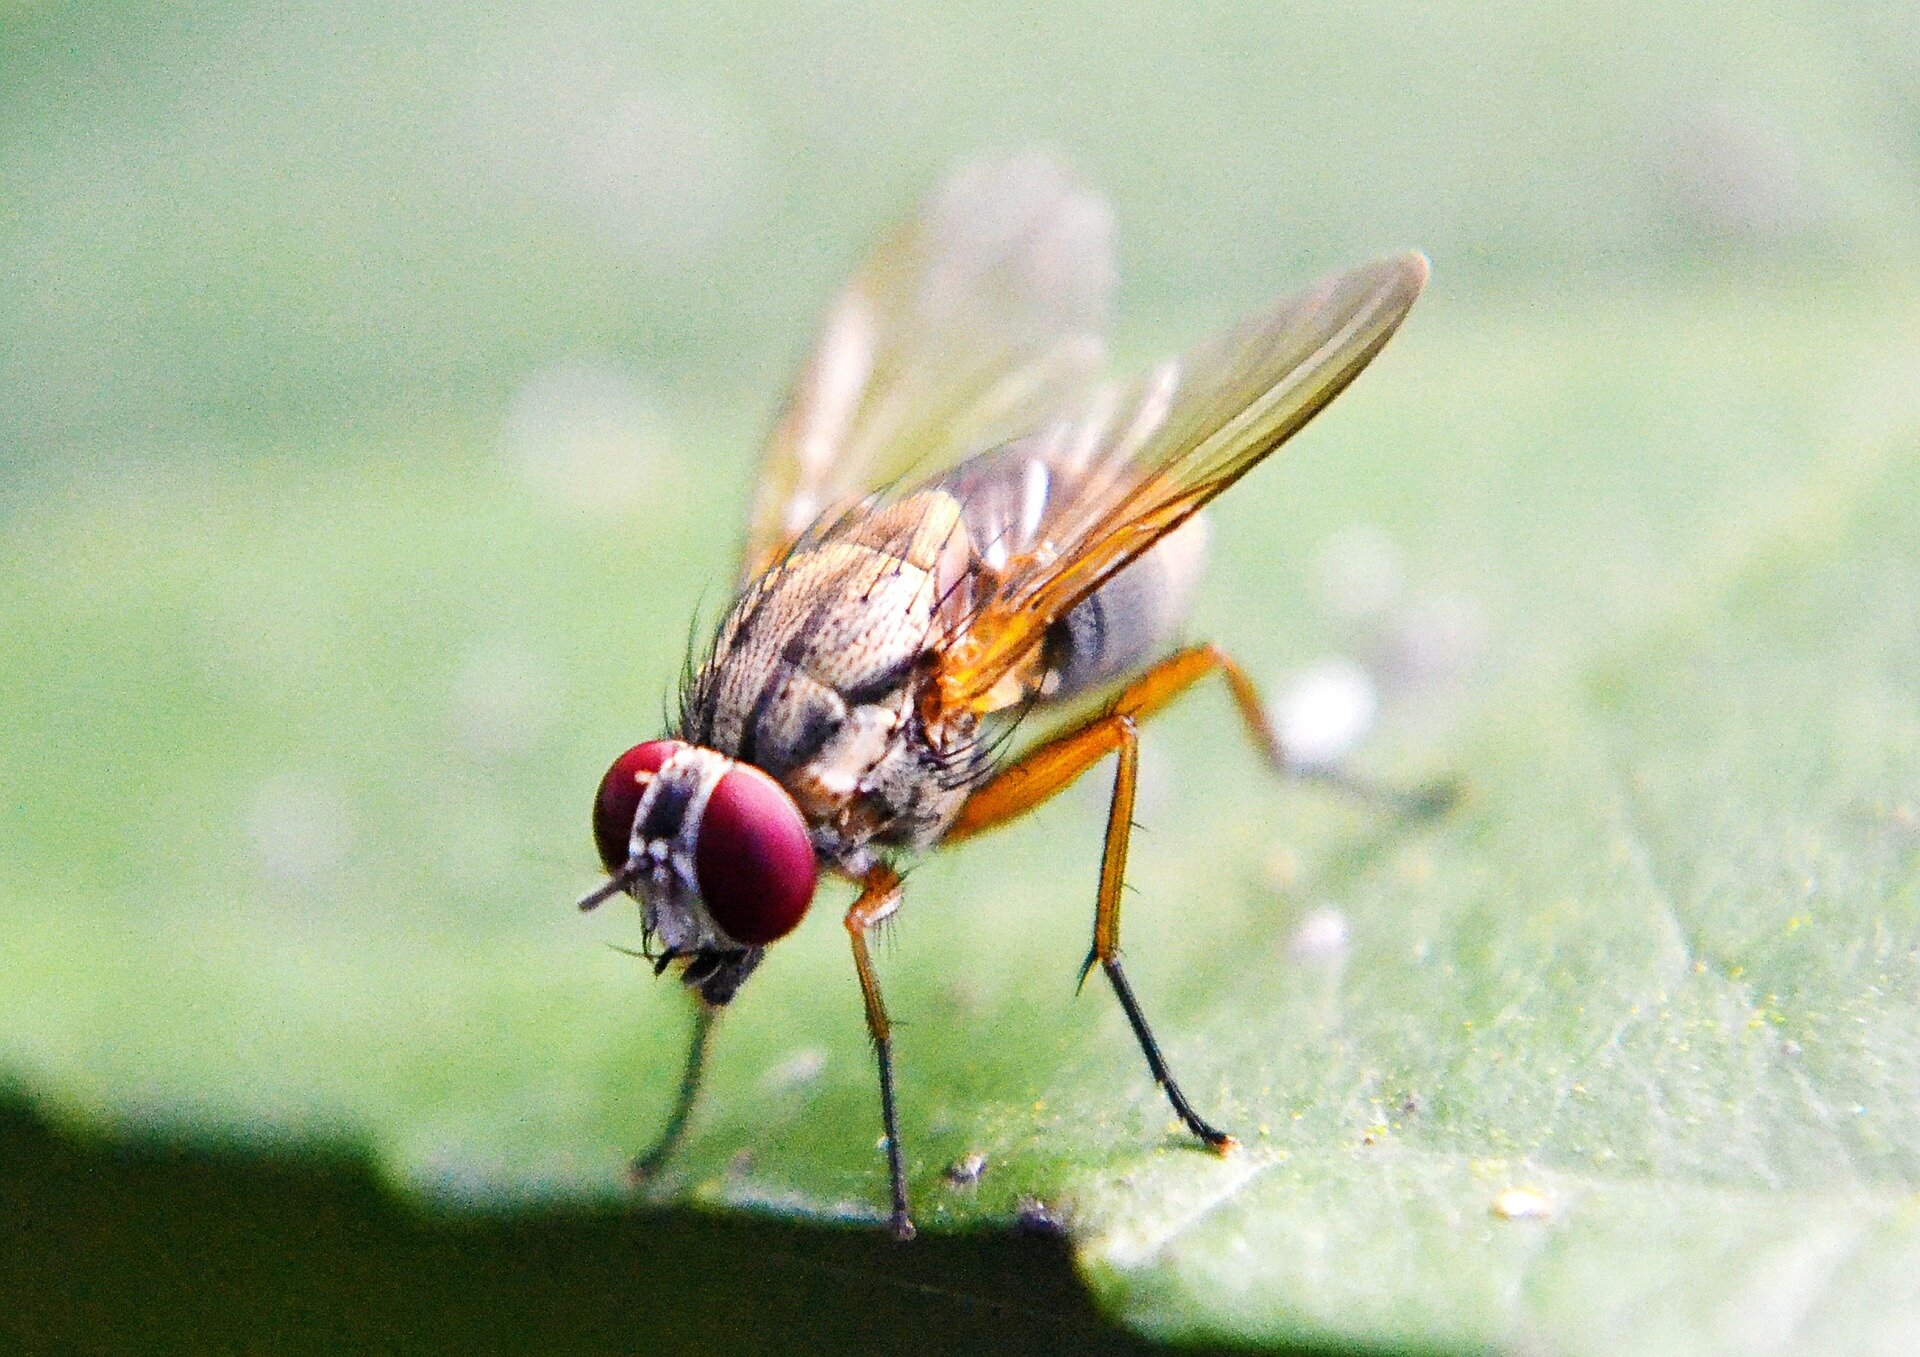 Fruit flies give researchers new insights into the 'highway of the nerve cells'